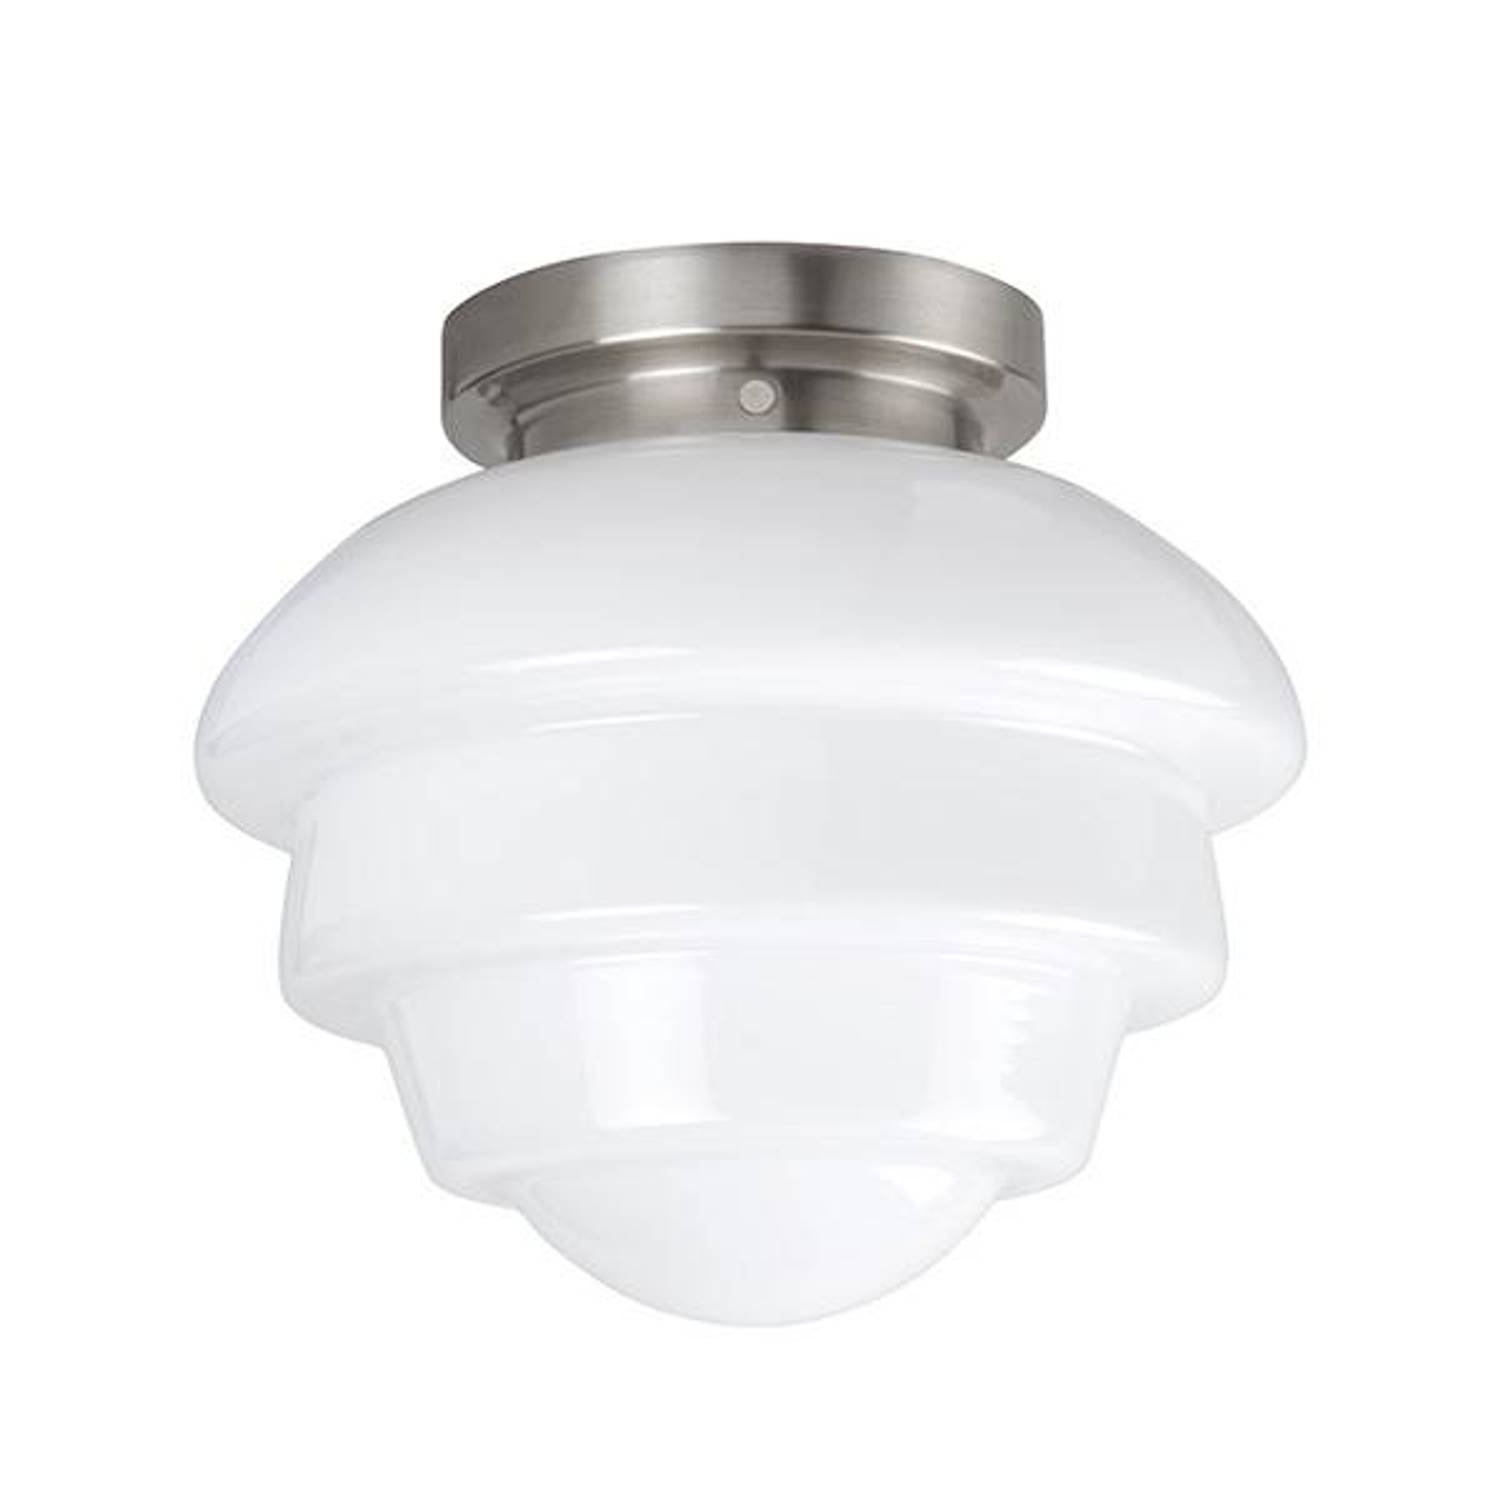 Highlight Plafondlamp Deco Oxford klein